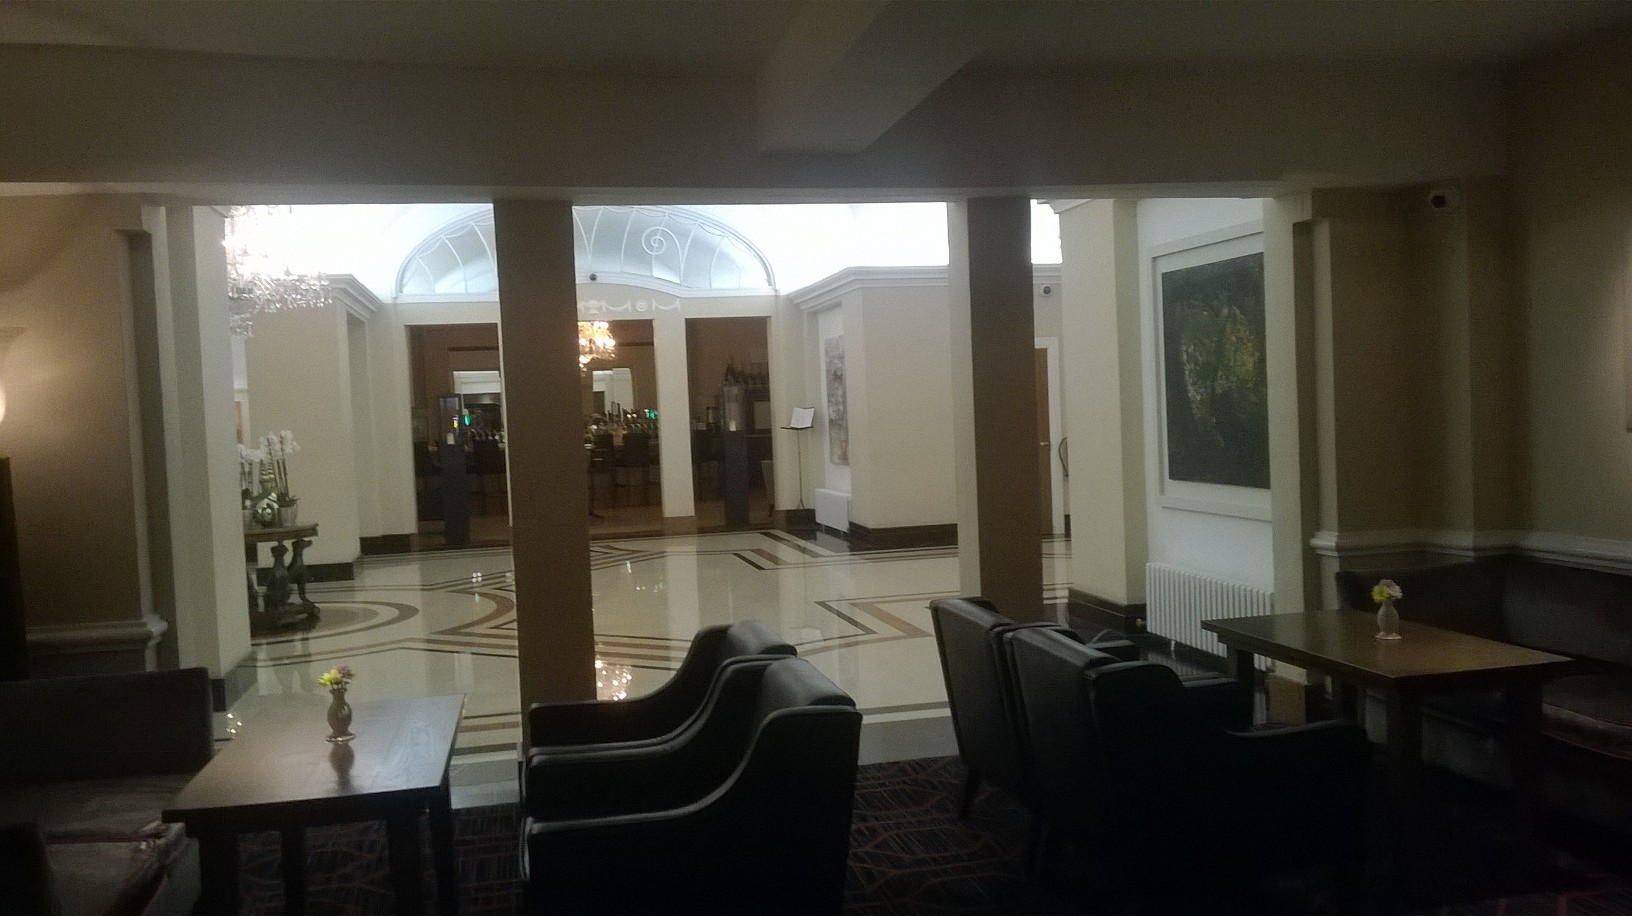 dublin-gresham-hotel-lobby-bar-area-oct16